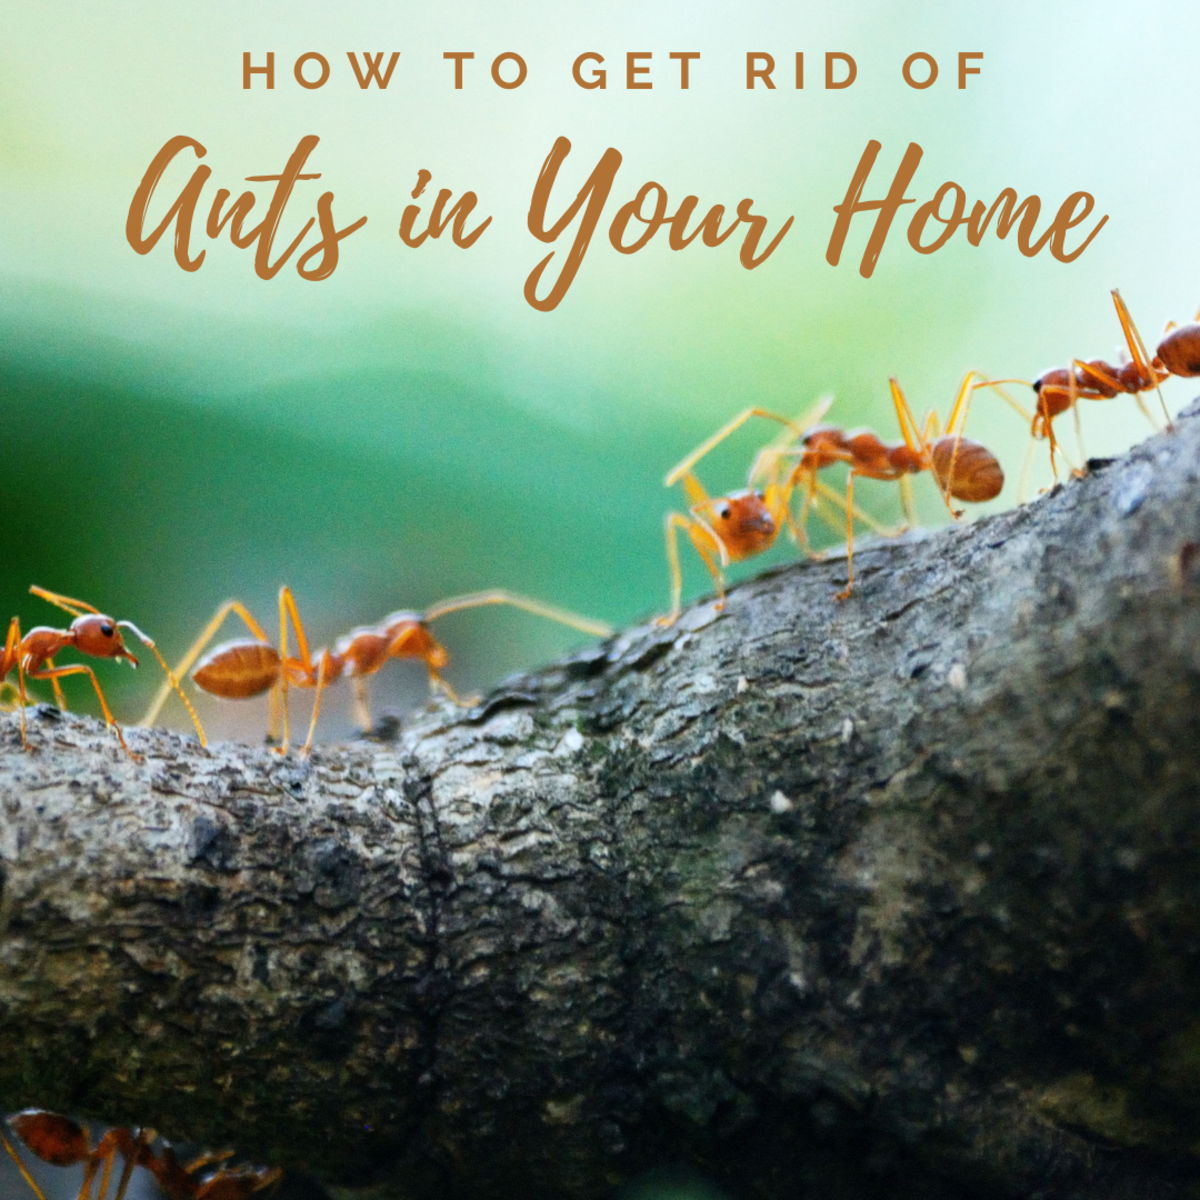 7 Natural Ways to Get Rid of Ants: How to Repel Ants Humanely Without Killing Them